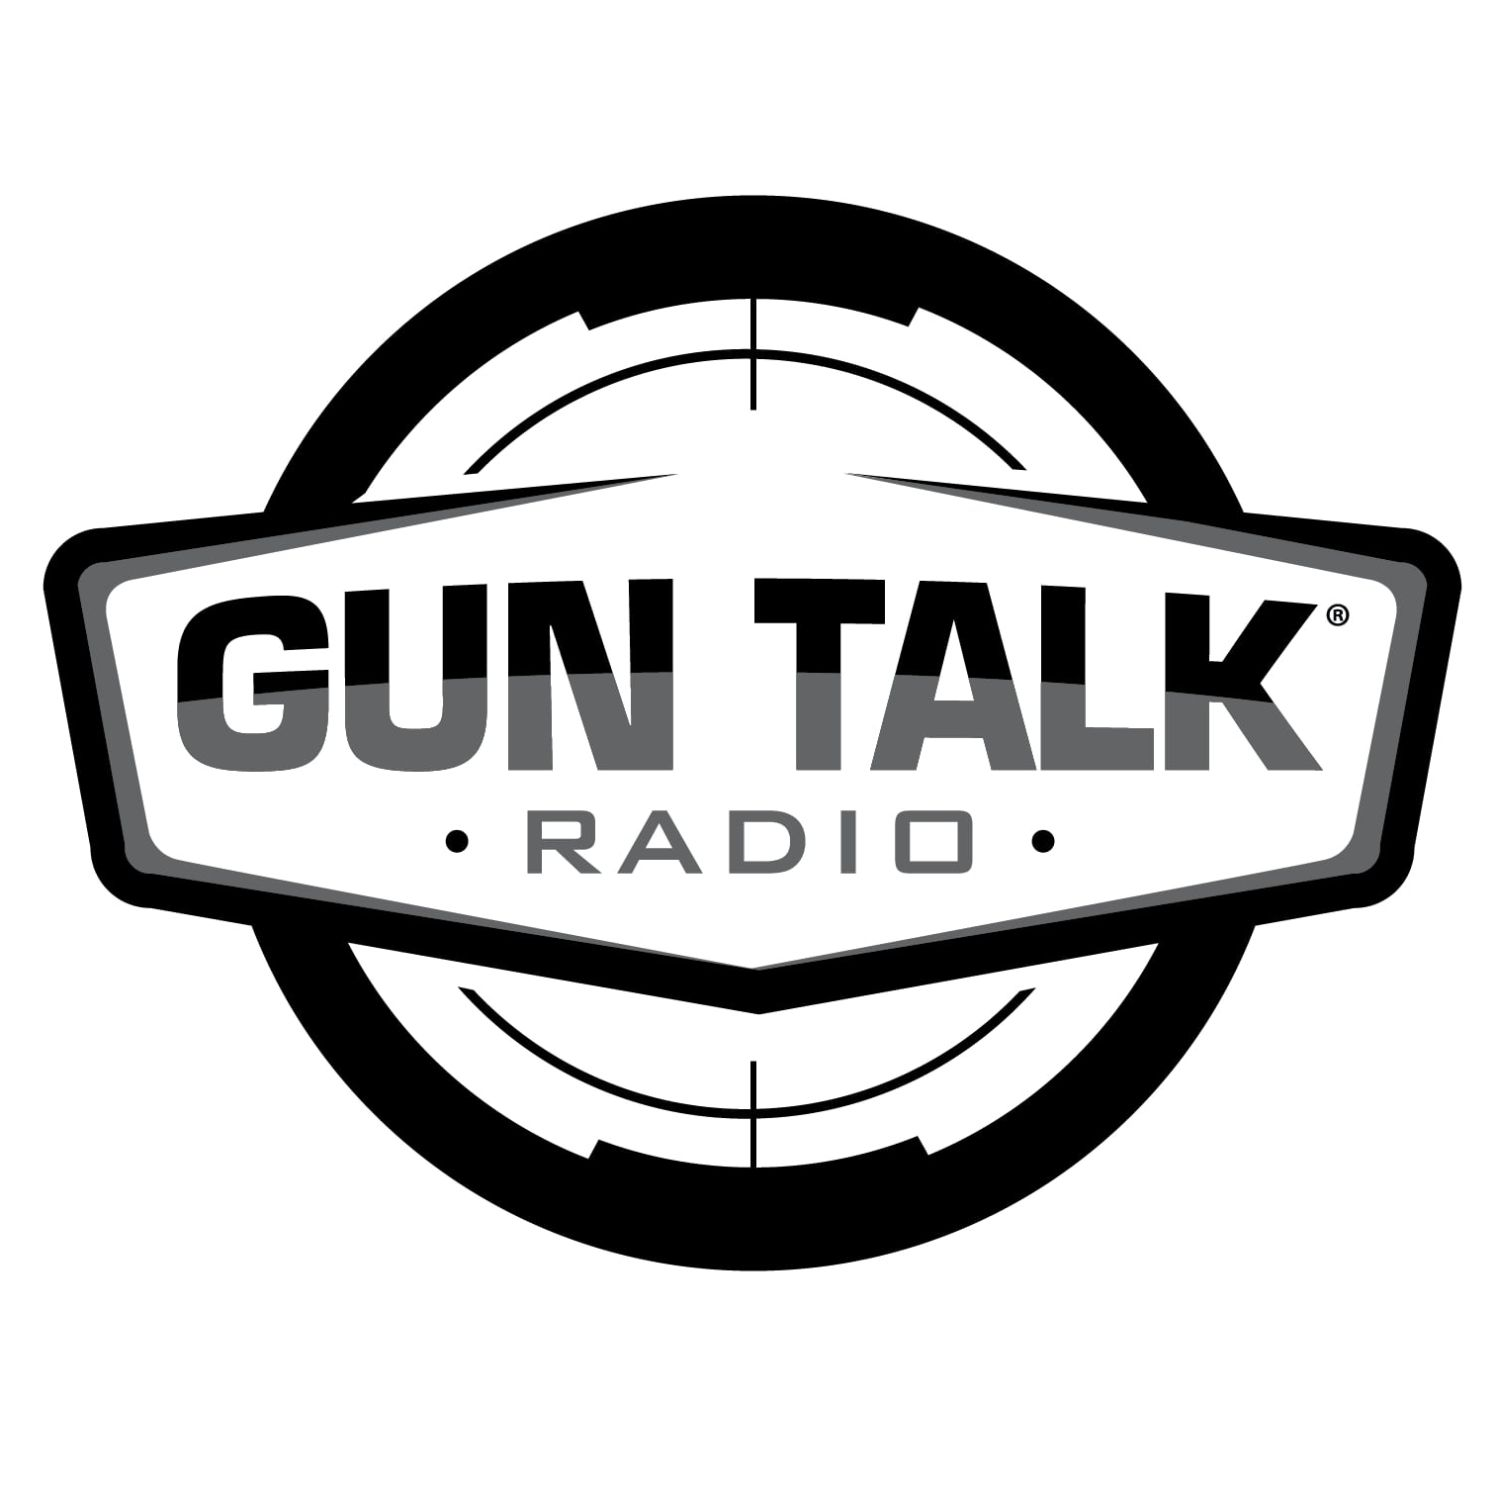 Artwork for Guntalk 2008-07-27 Part C